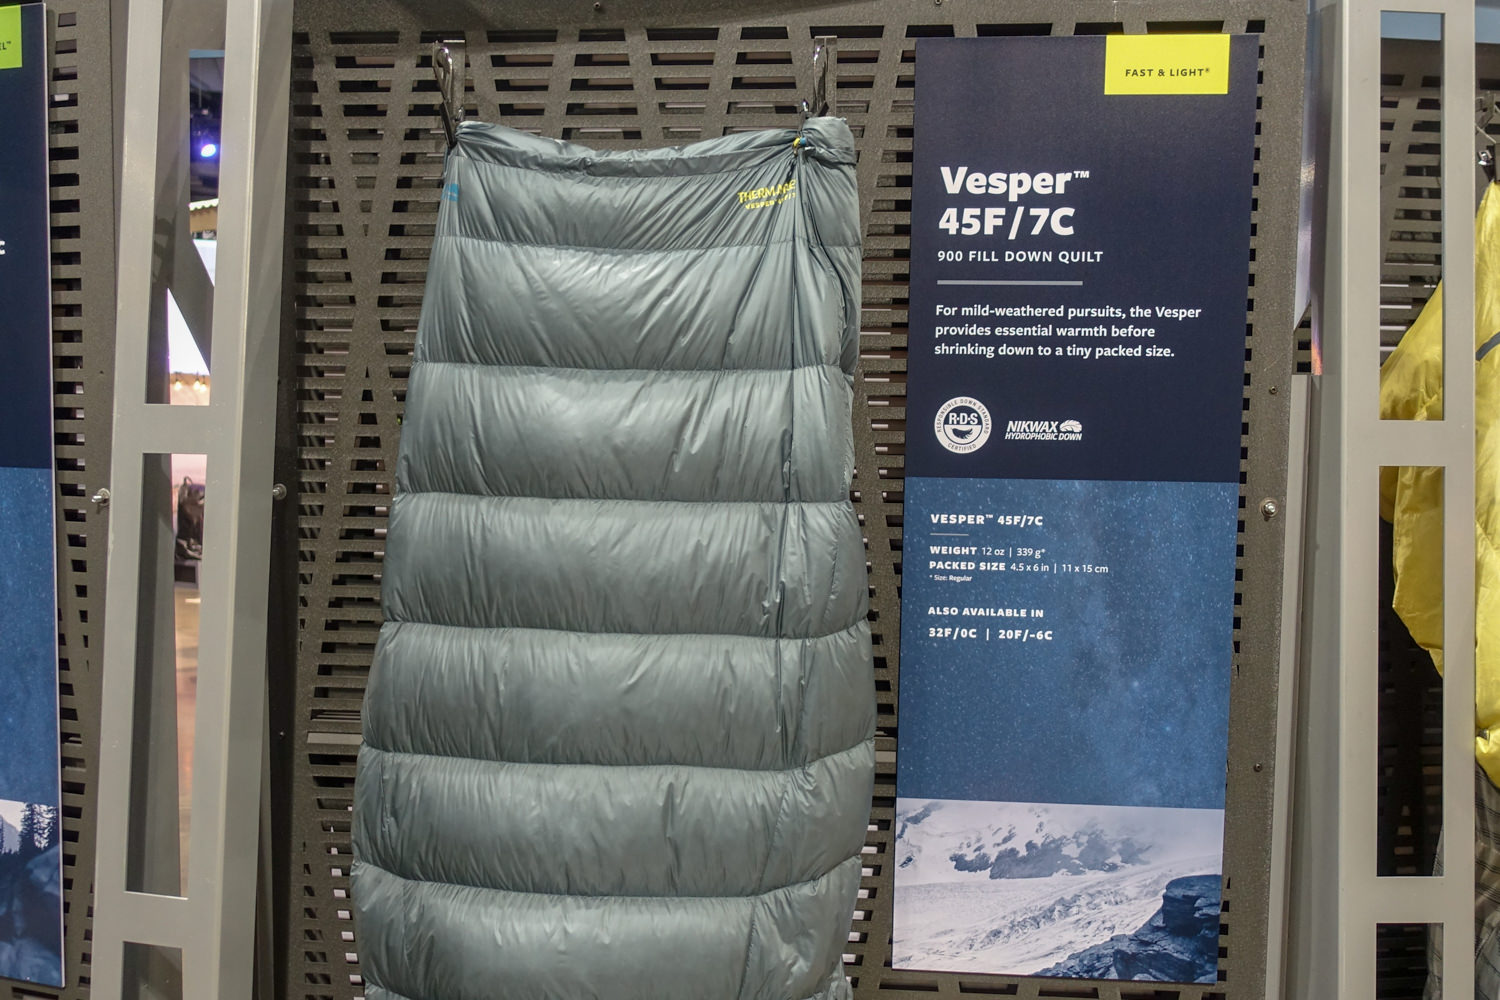 Best Sleeping Bags 2020 35 New and Exciting Products From Outdoor Retailer 2019 — CleverHiker